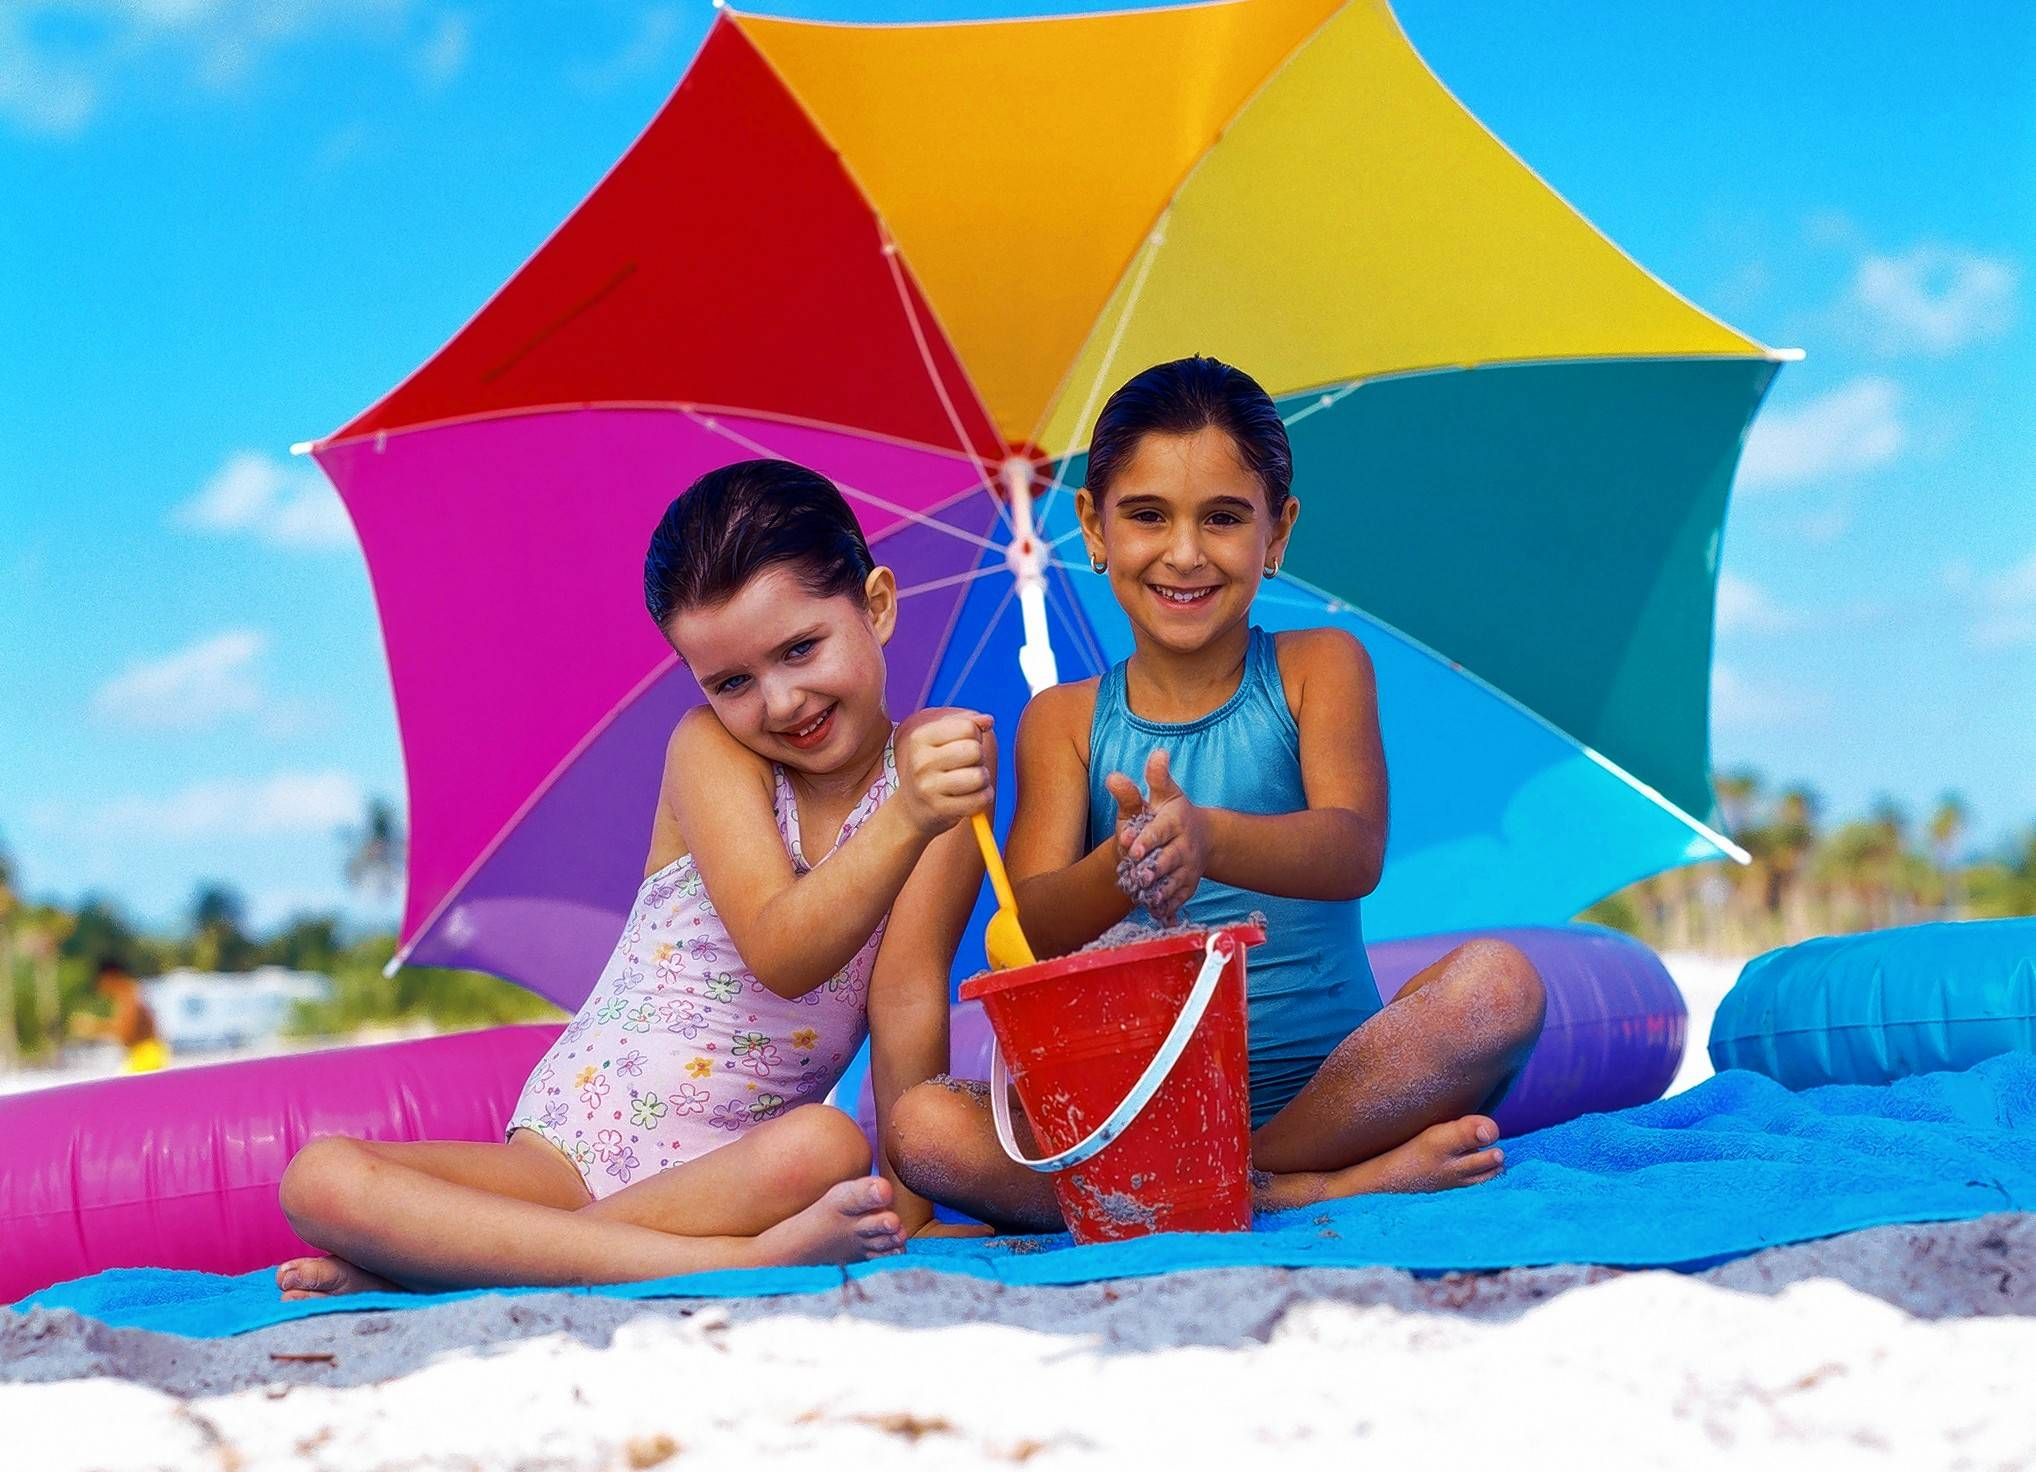 Are you headed to the beach for the holidays? A large beach umbrella can provide added protection for your kids from the sun's harmful rays.